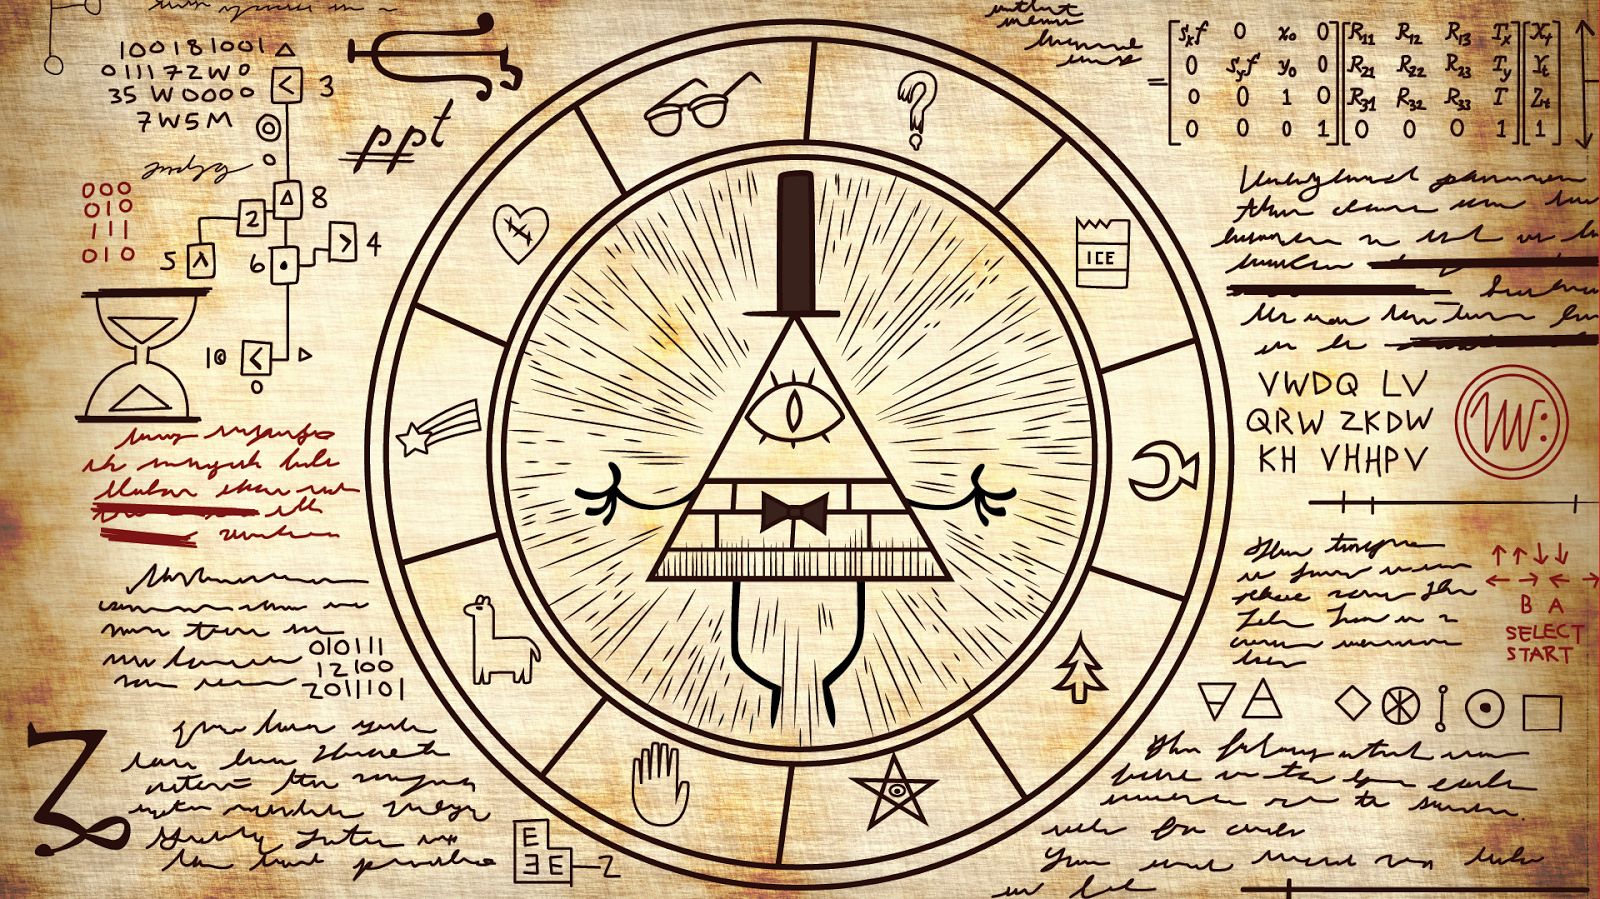 11. Download Gravity Falls Wallpapers and Photos.